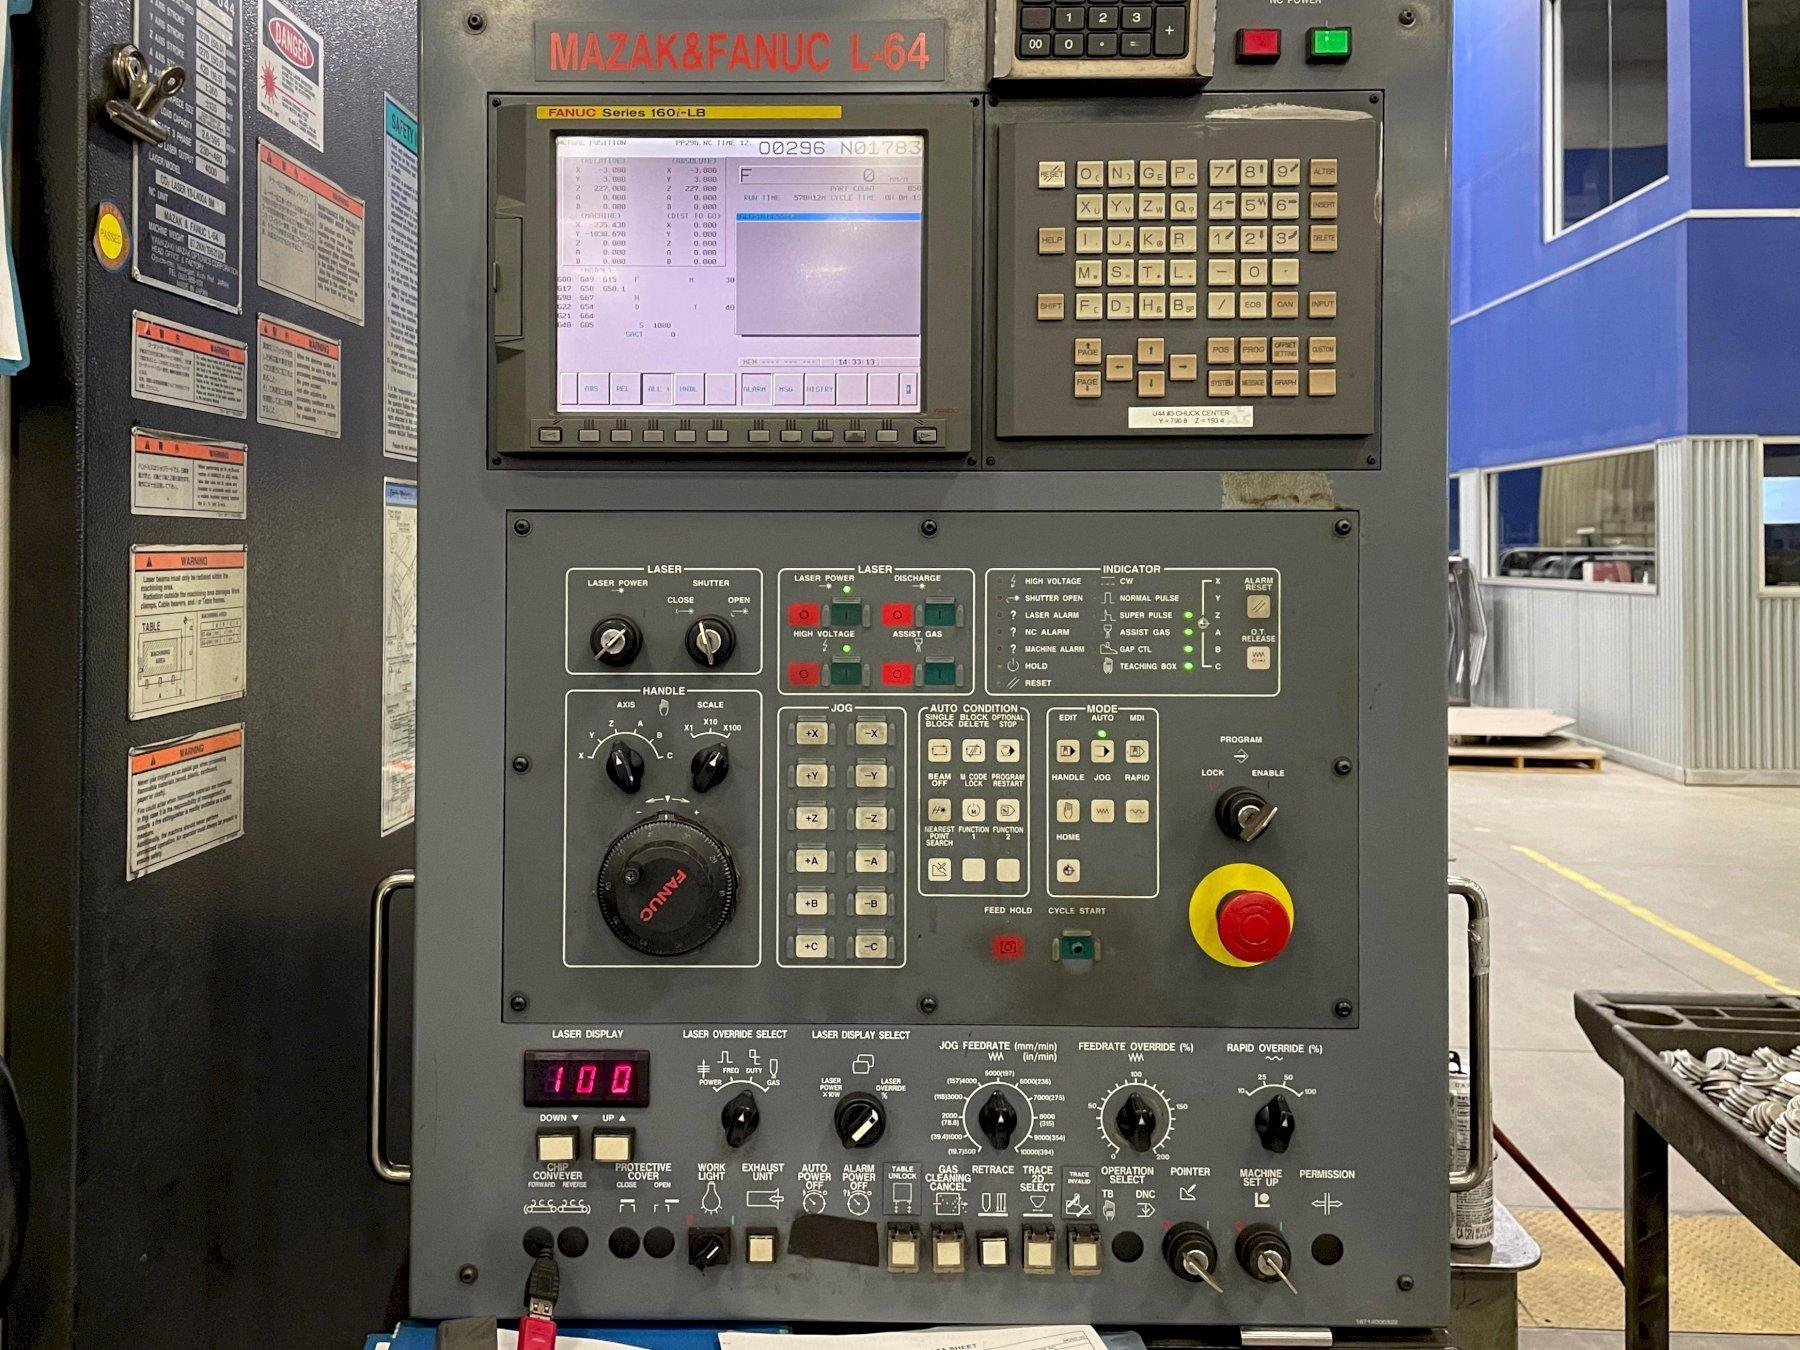 Mazak Space Gear U44 2006 2.5KW 6 Axis w/Rotery CO2 Laser